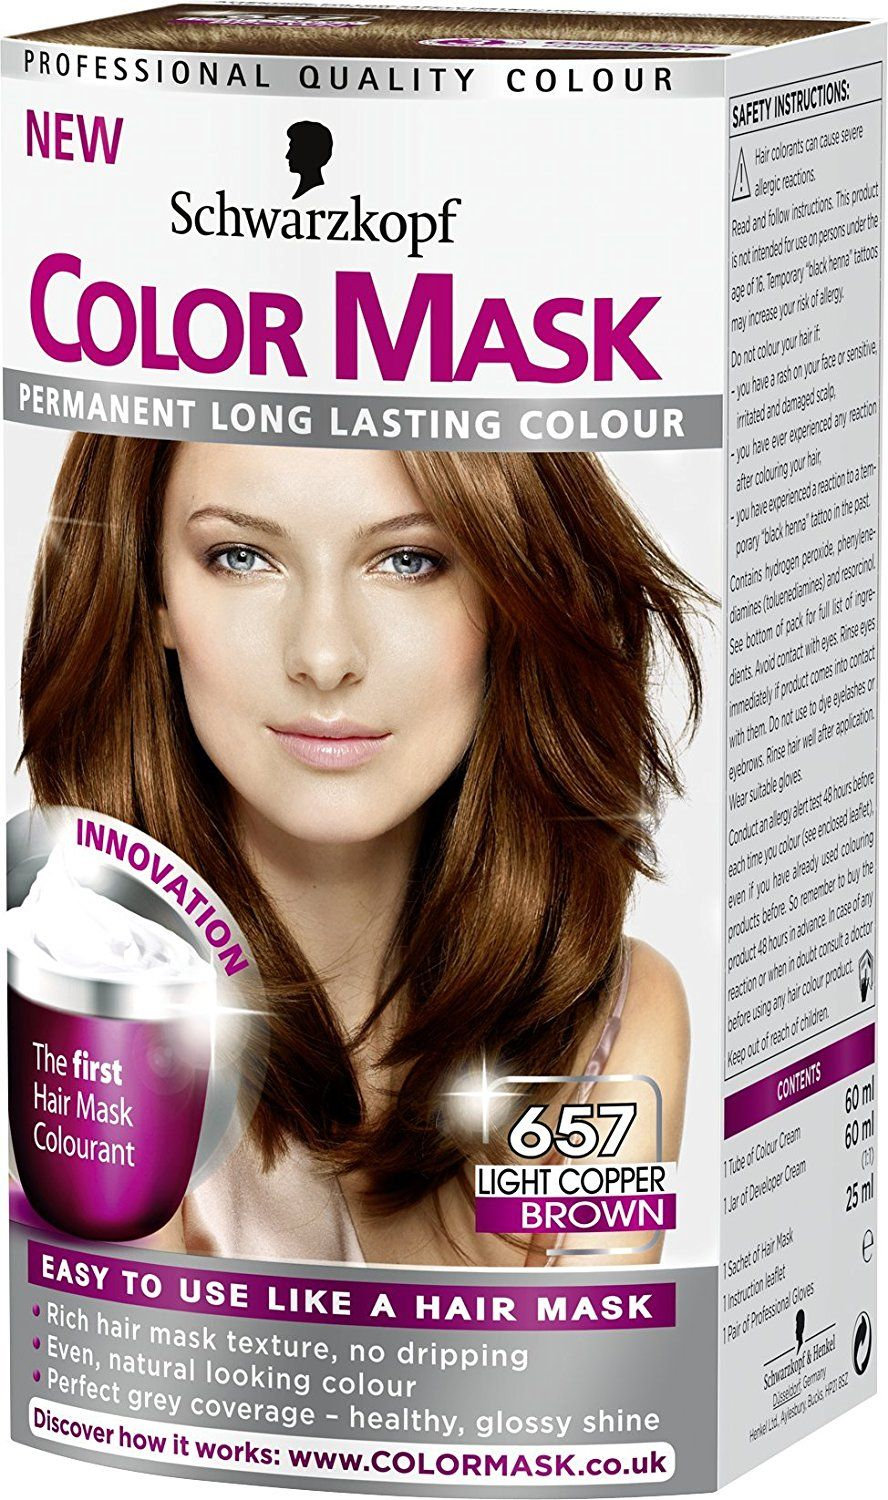 Schwarzkopf Color Mask 657 Light Copper Brown This Is An Amazon